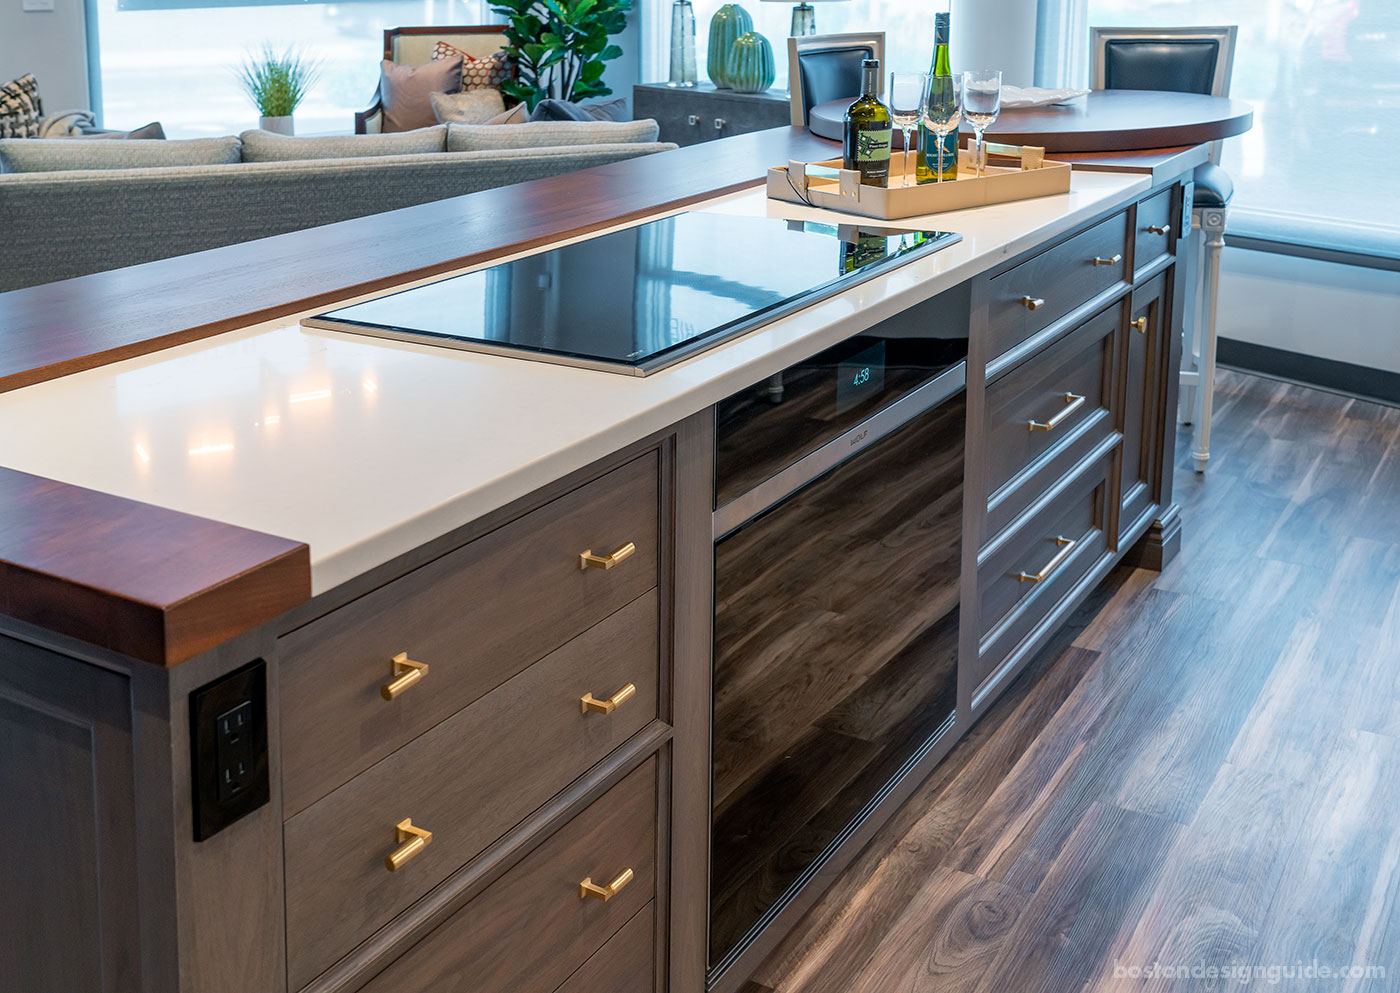 Fully operational gourmet kitchen at Interiology Design Co.